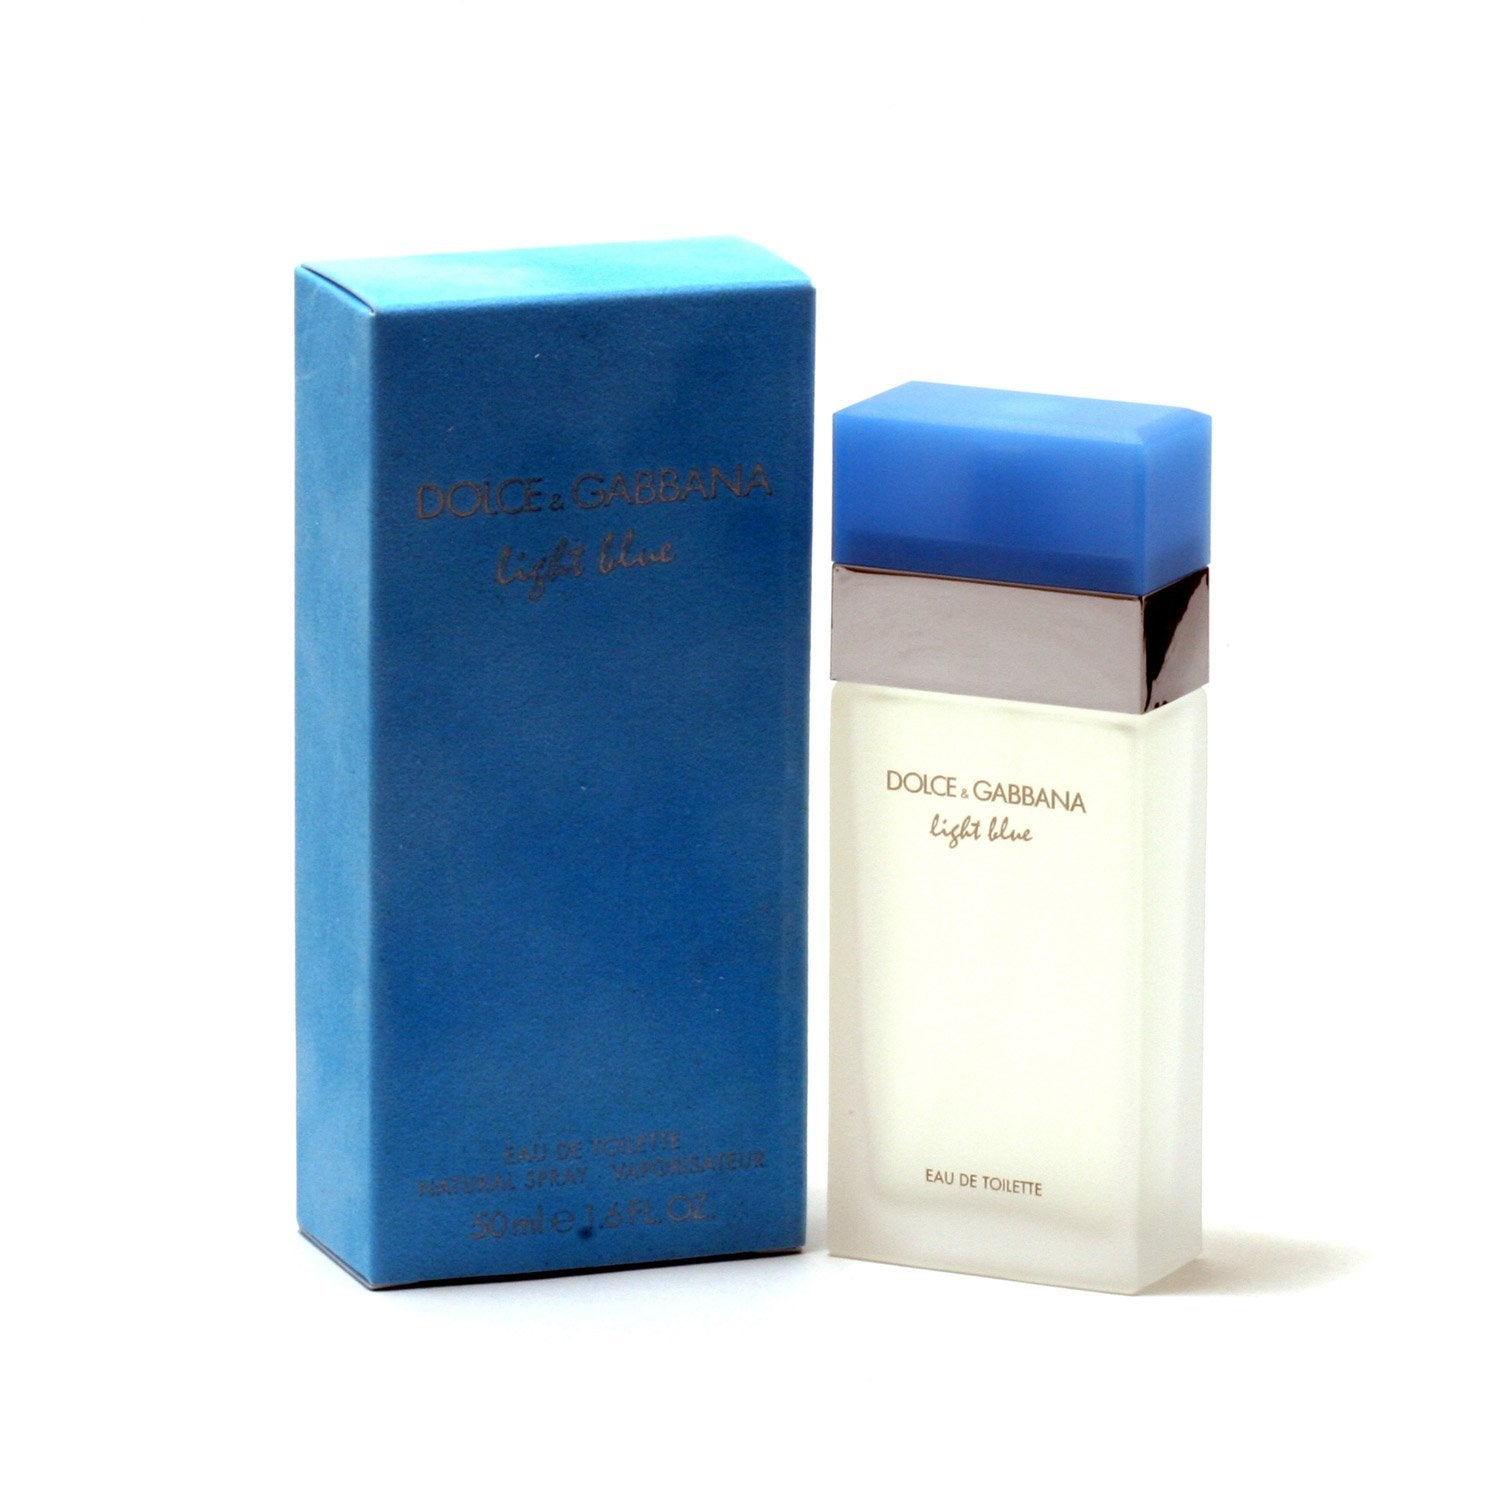 Perfume - DOLCE & GABBANA LIGHT BLUE FOR WOMEN - EAU DE TOILETTE SPRAY